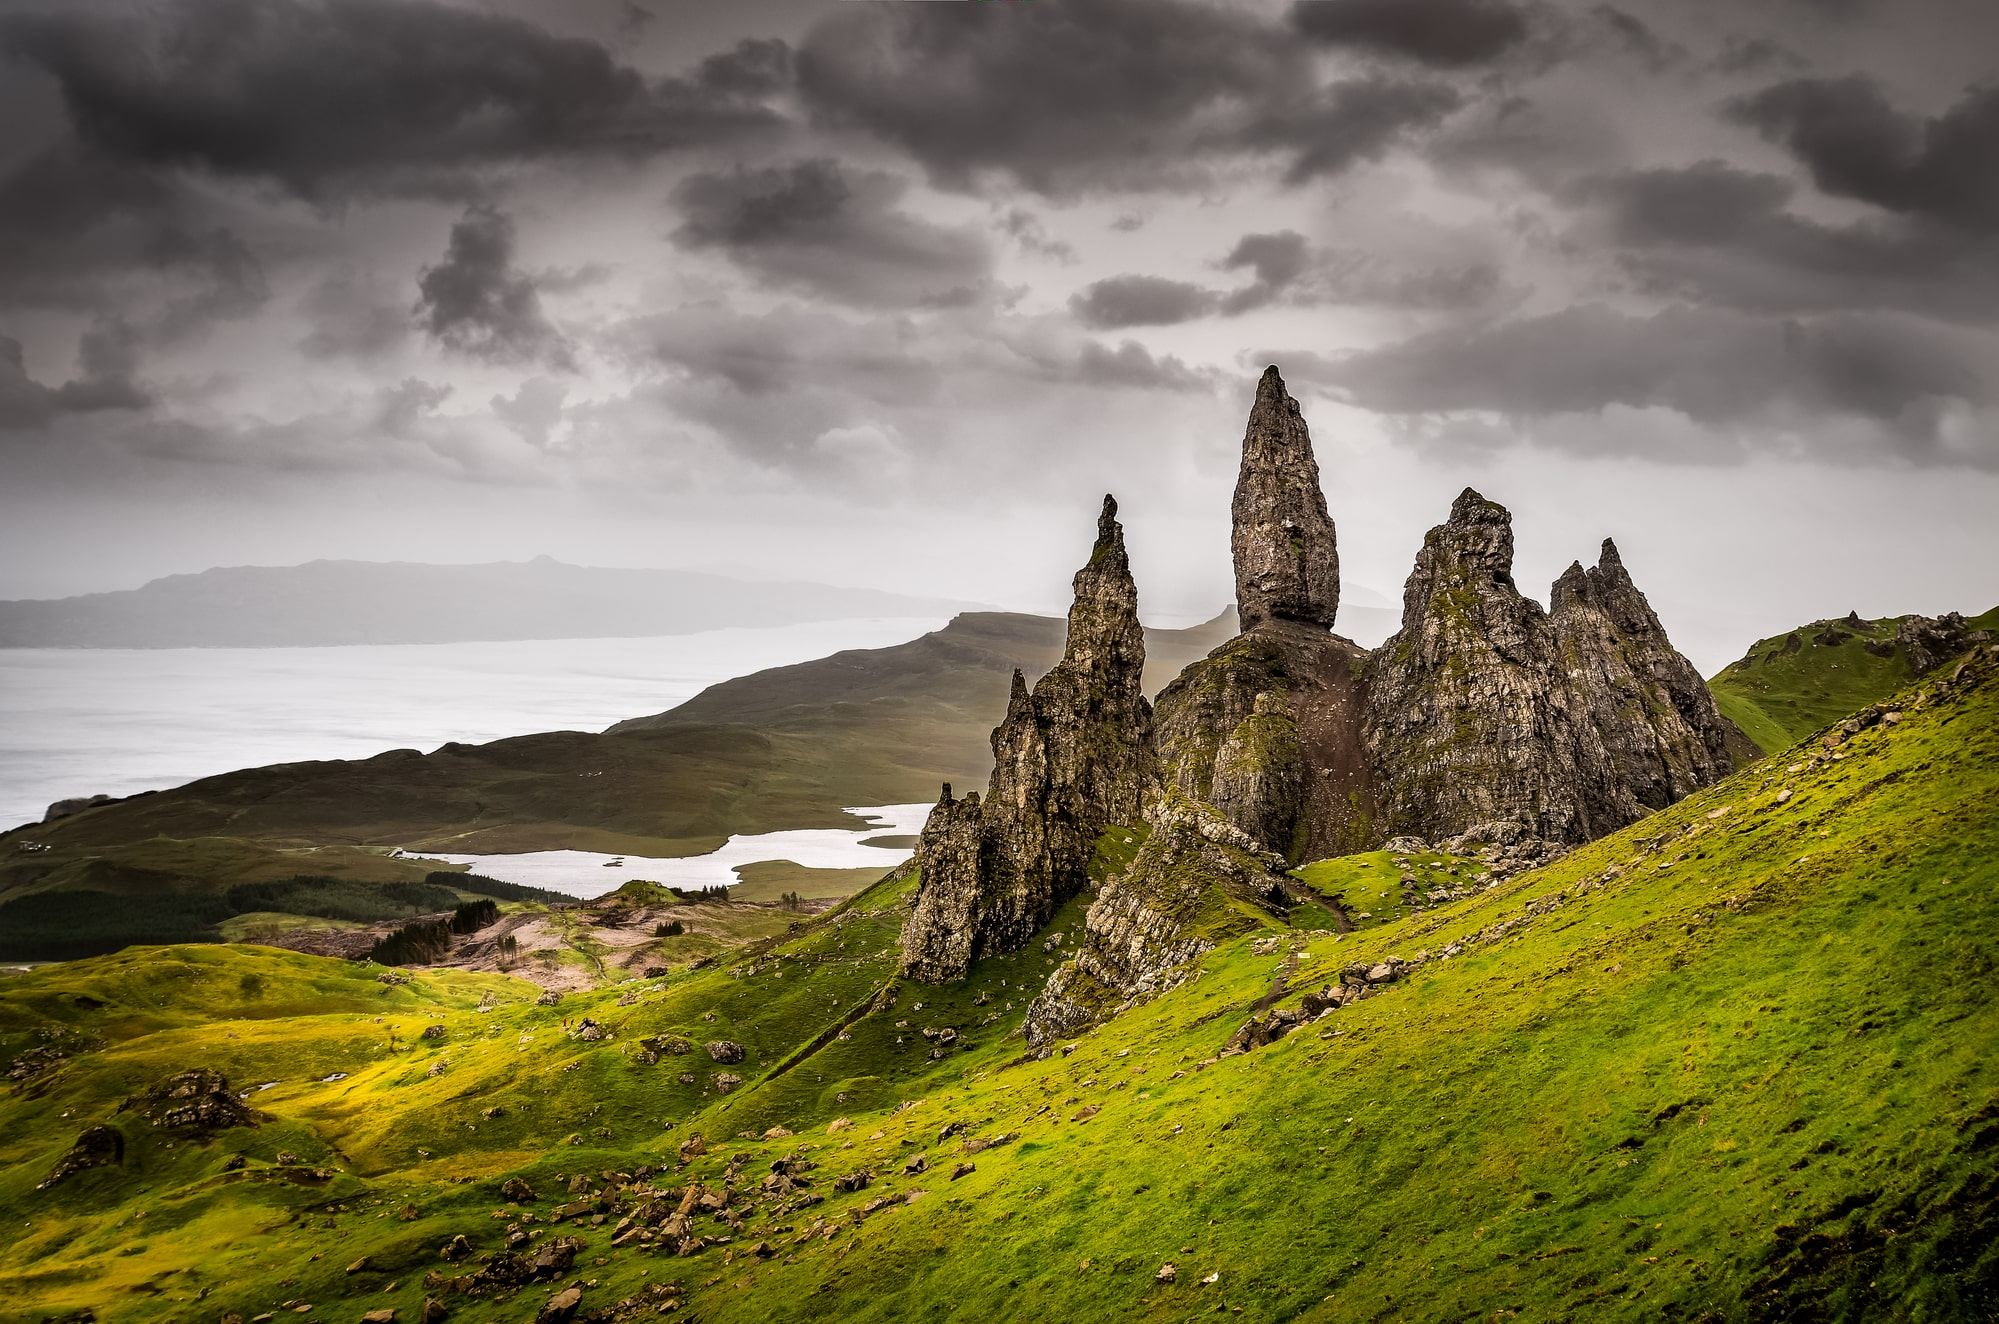 Private tour to Edinburgh, Pitlochry, Inverness, Isle of Skye, Fort William in Scotland